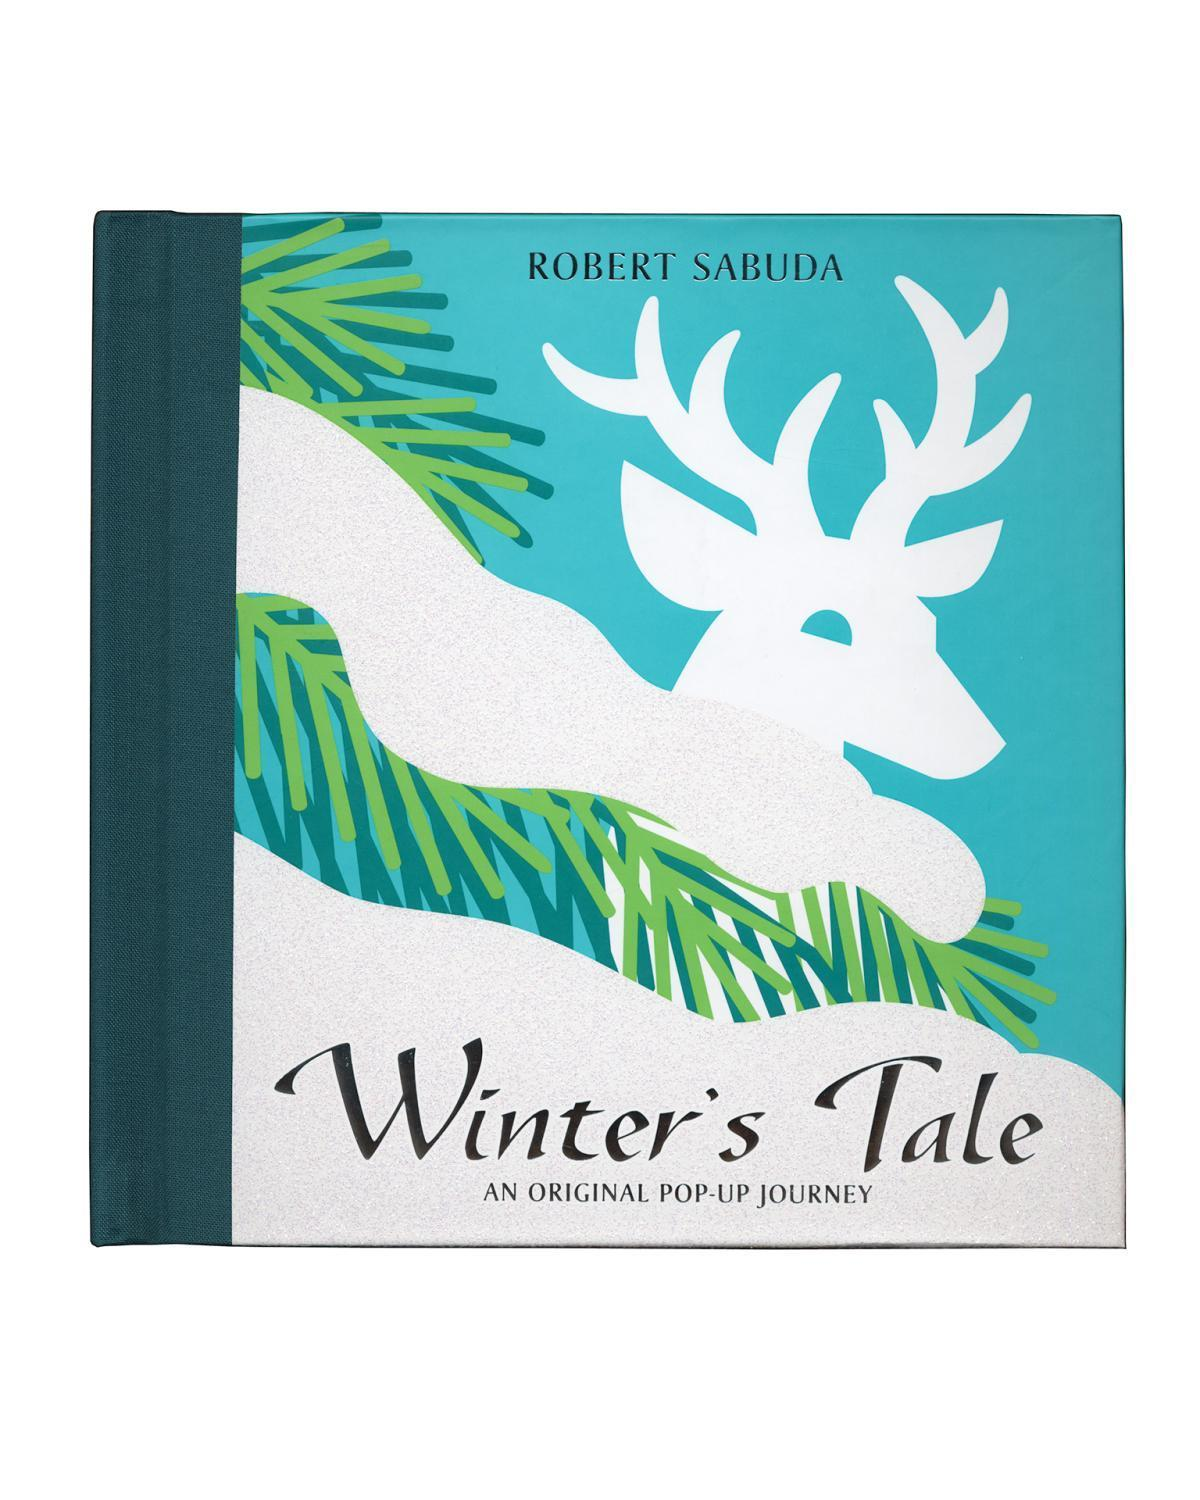 Little simon + schuster play Winter's Tale